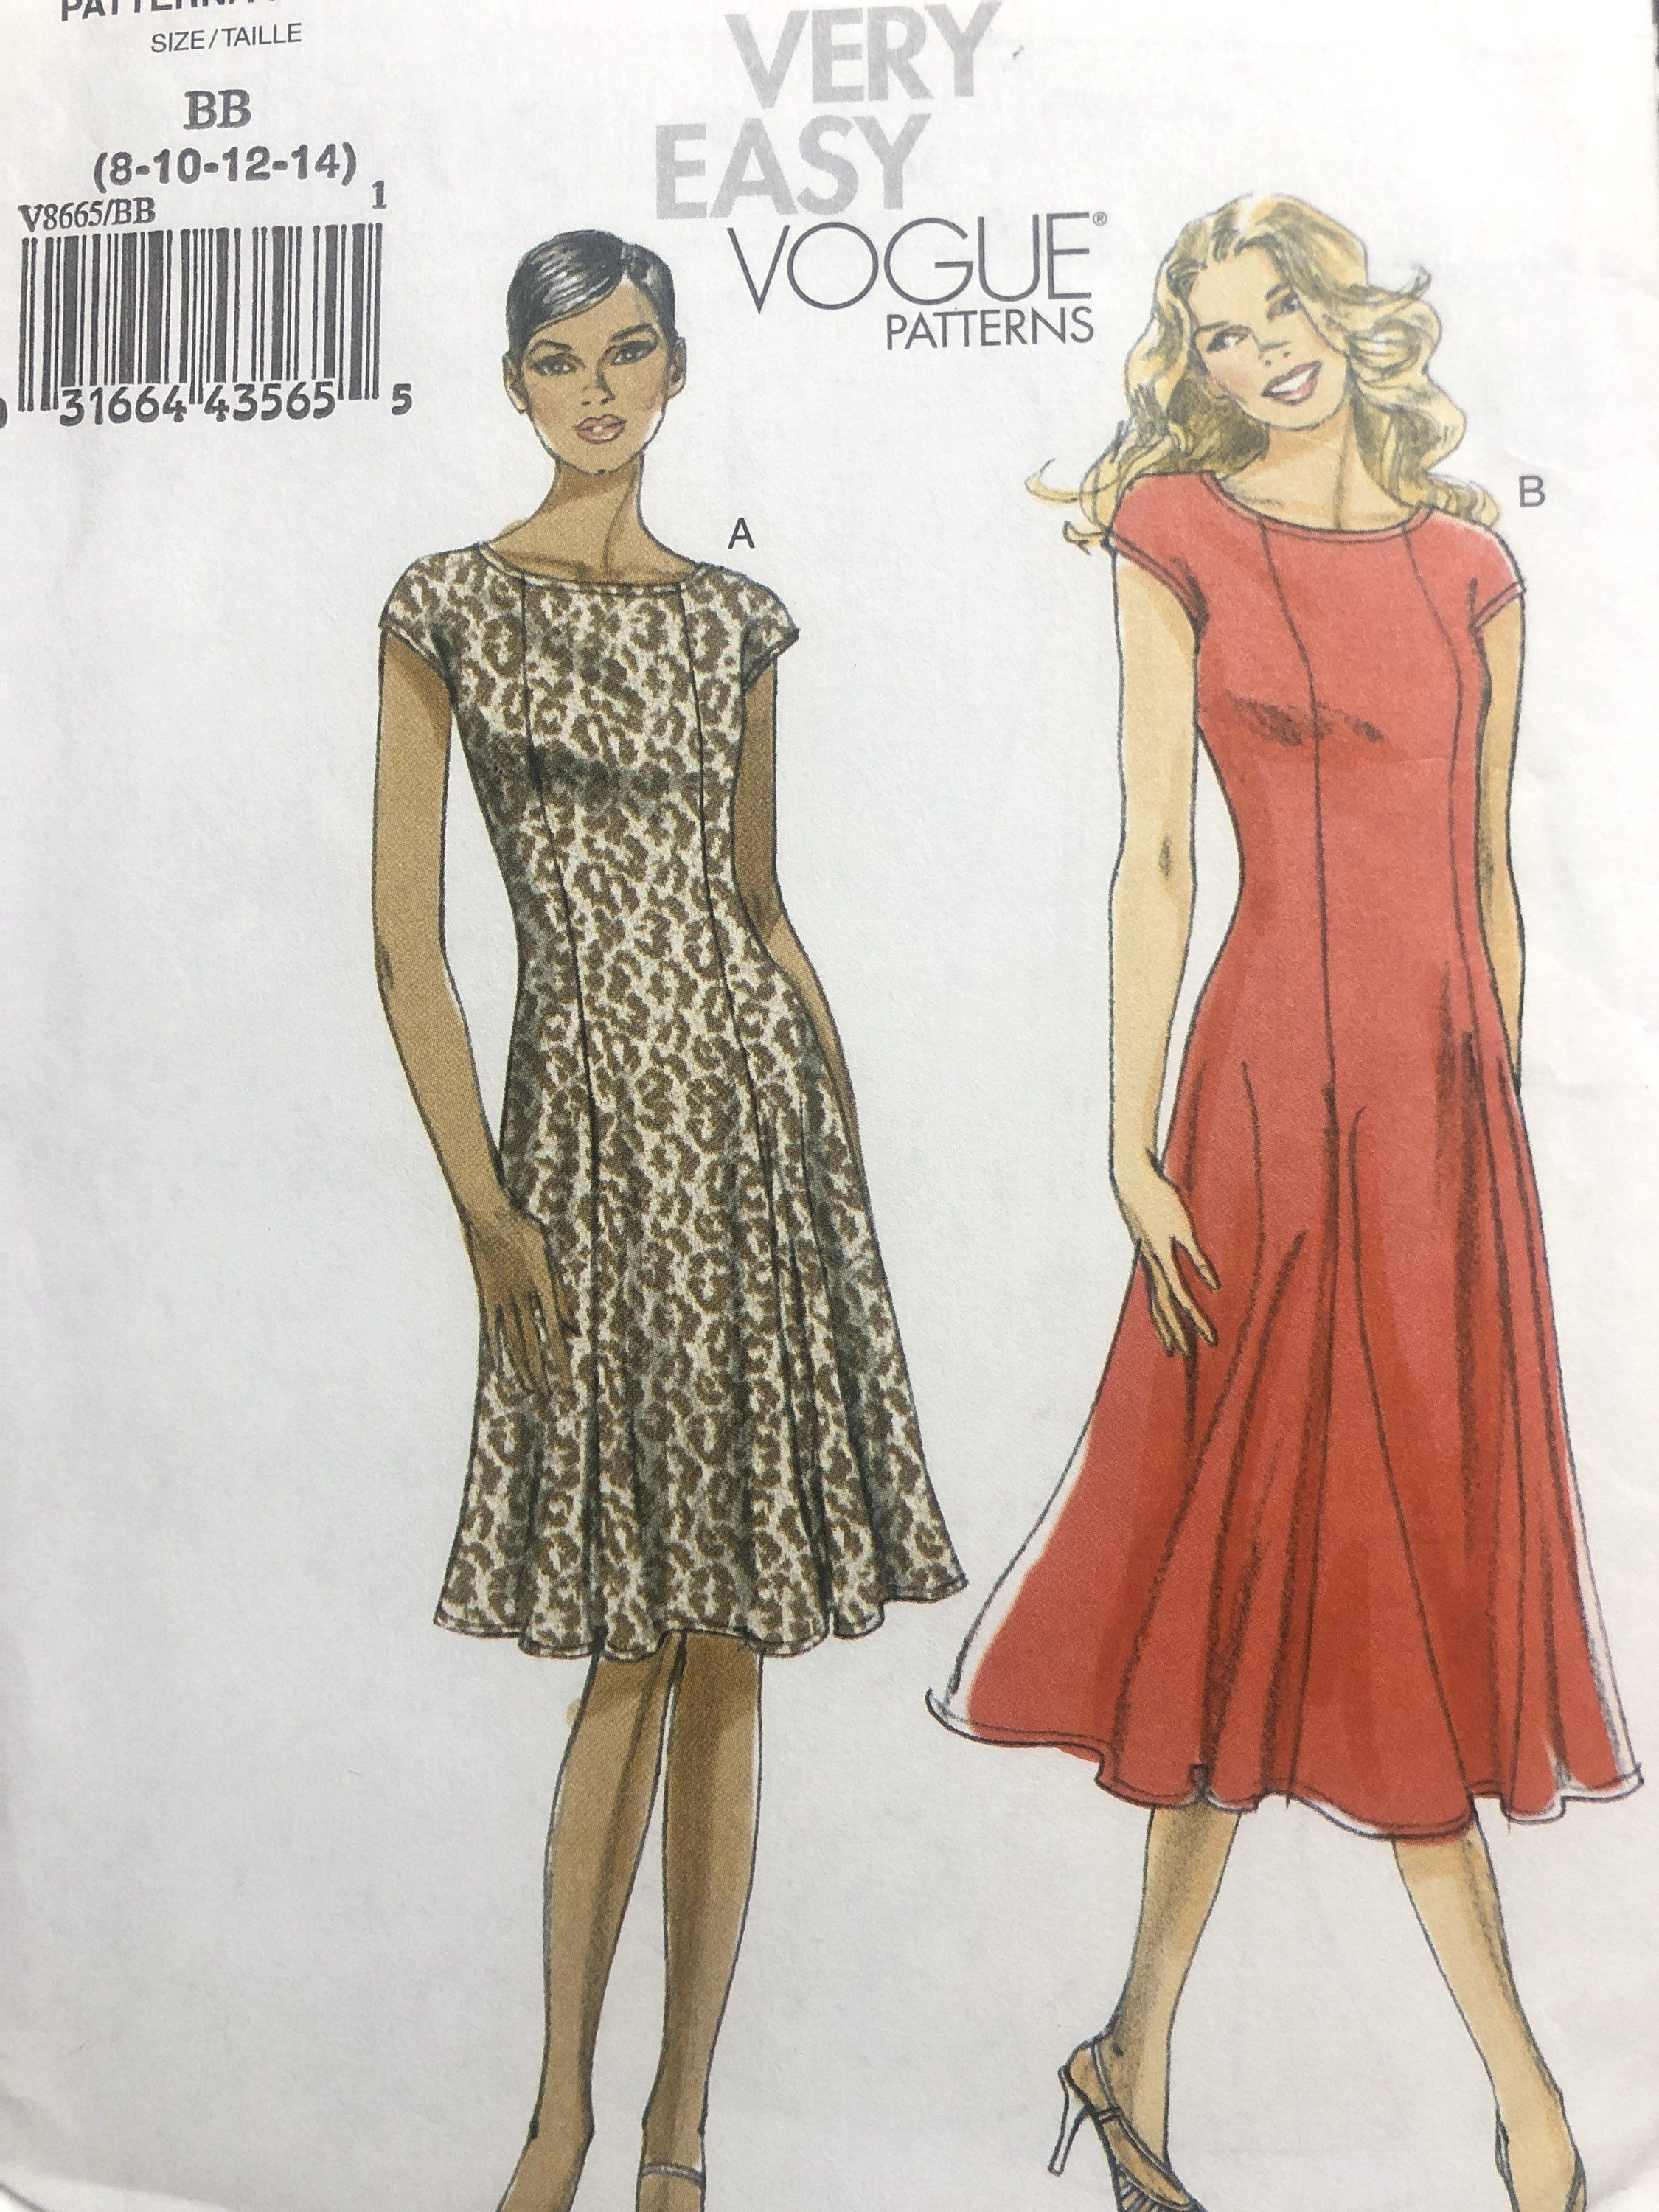 Misses Dresses Sewing Pattern Very Easy Vogue Vogue 8665